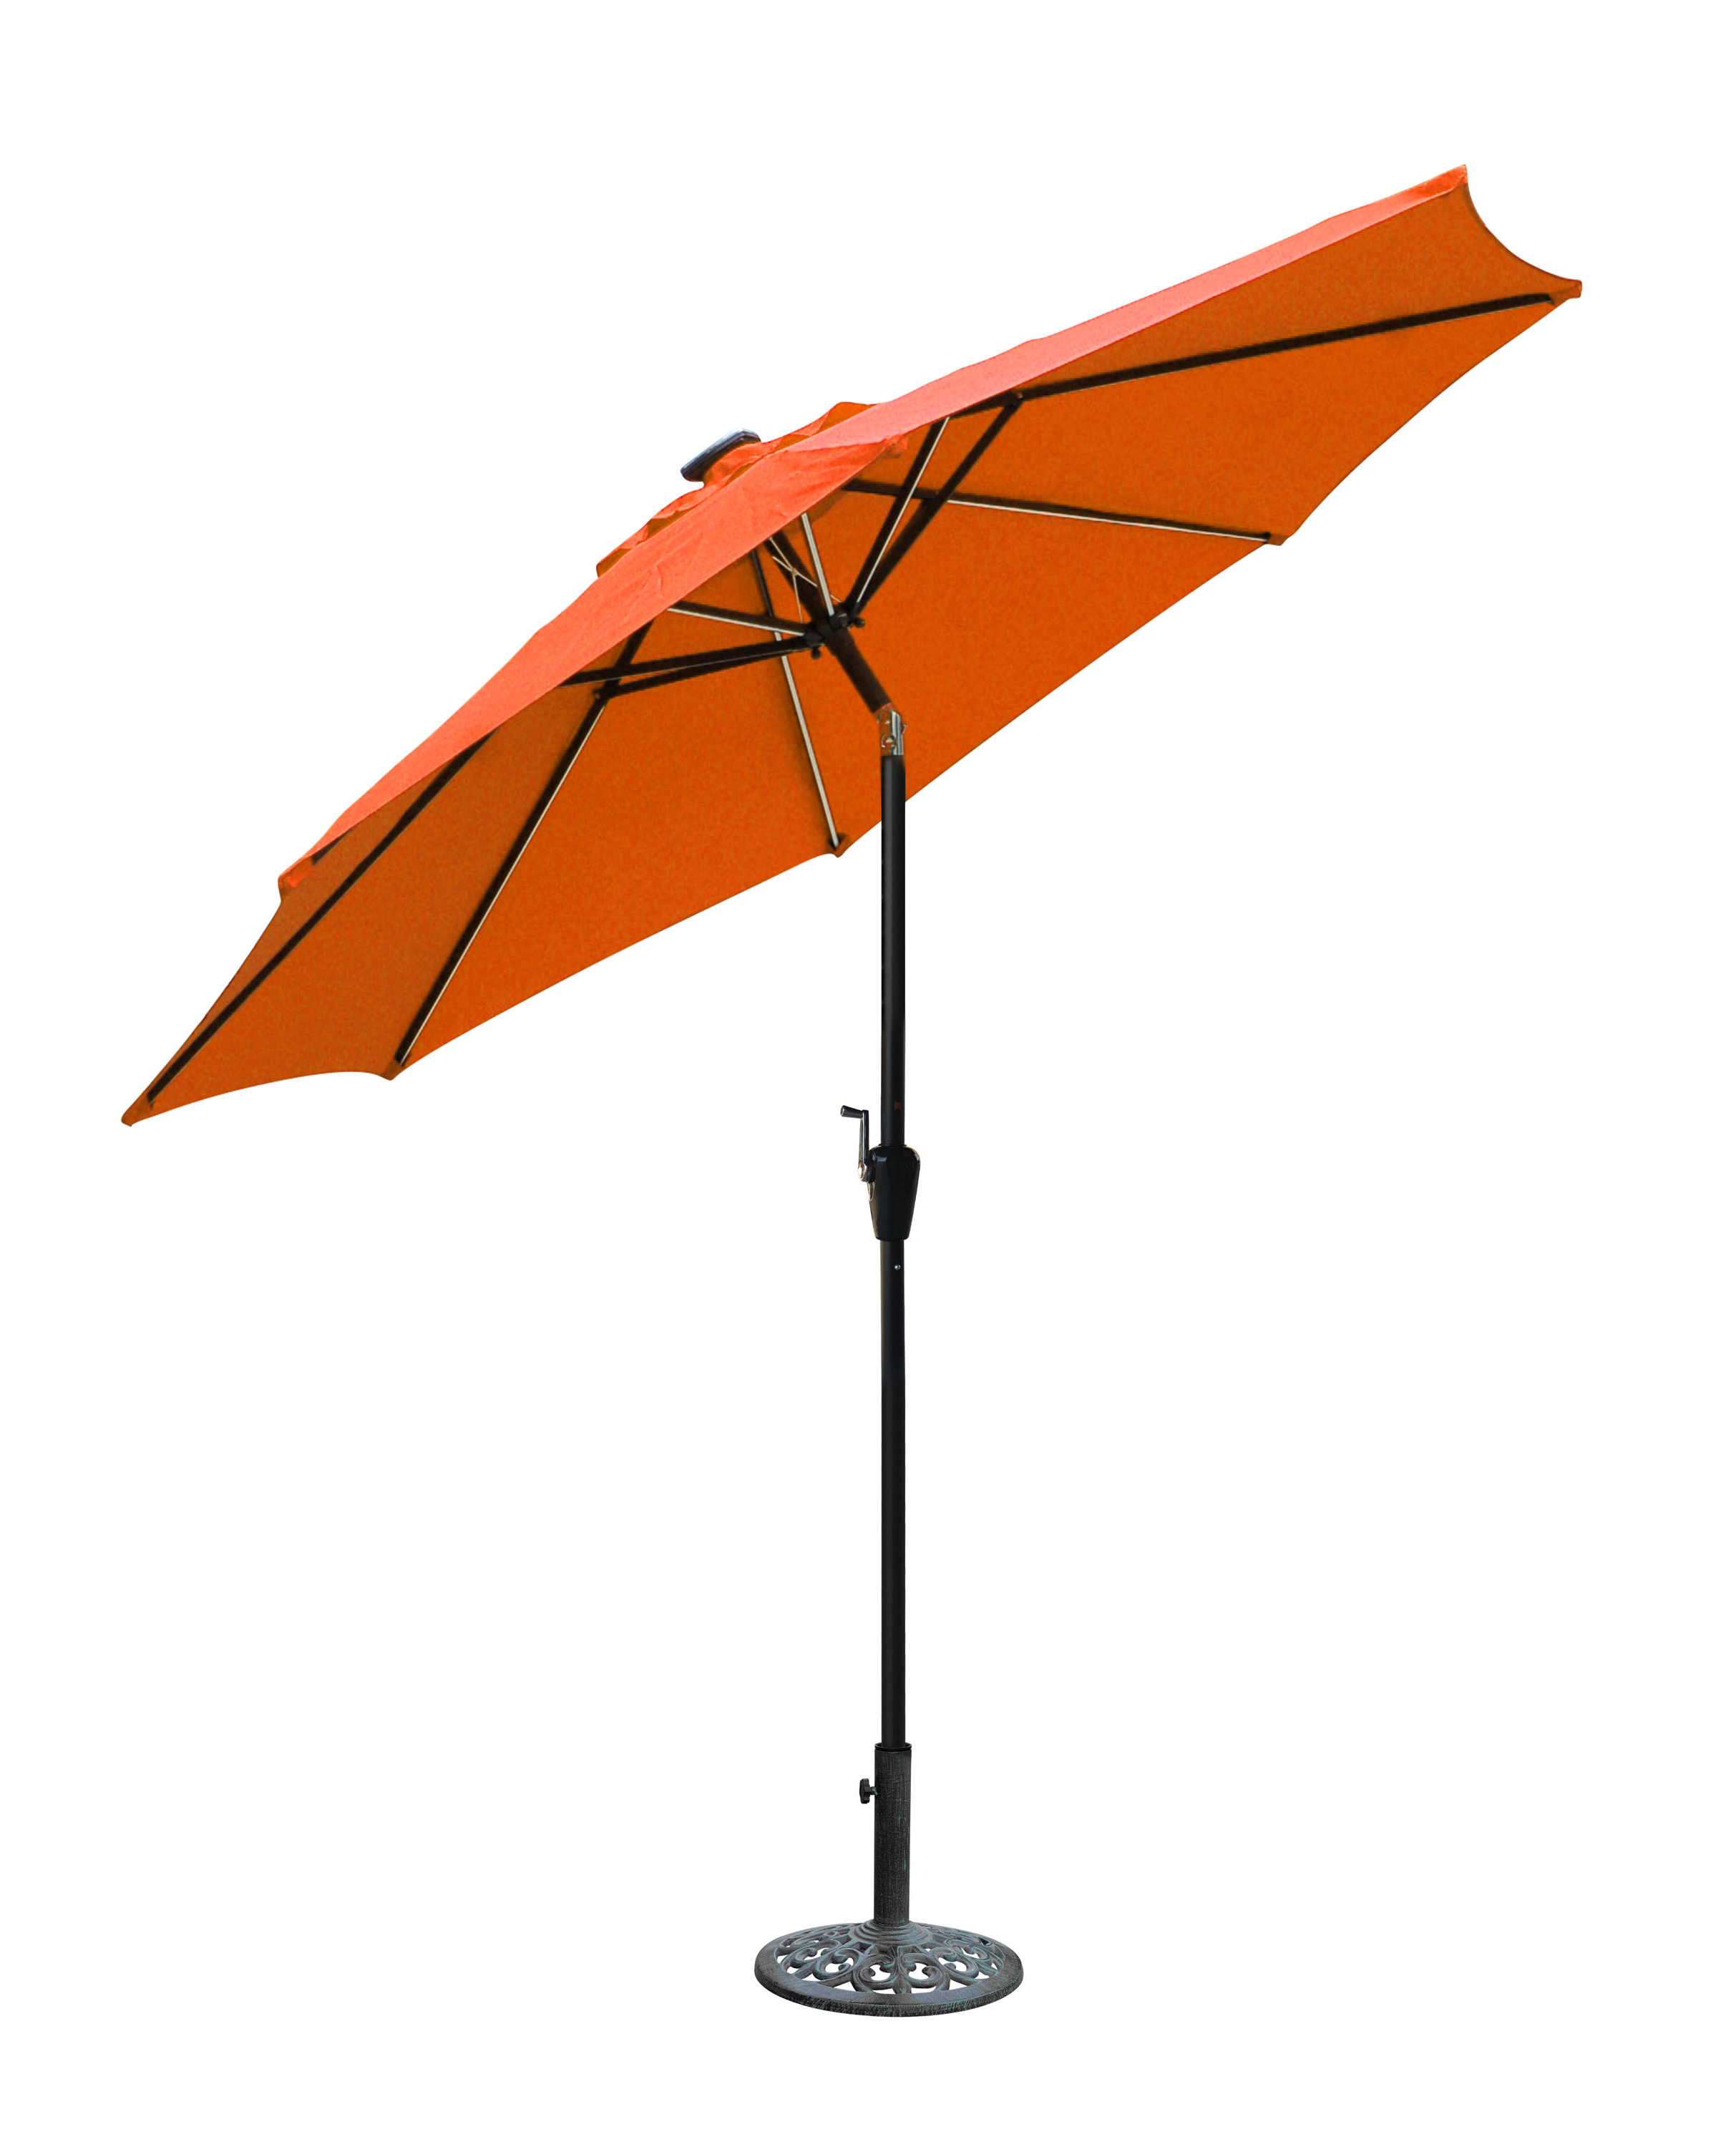 Branscum Lighted Umbrellas Intended For Trendy Sonora 8.5' Lighted Umbrella (Gallery 8 of 20)